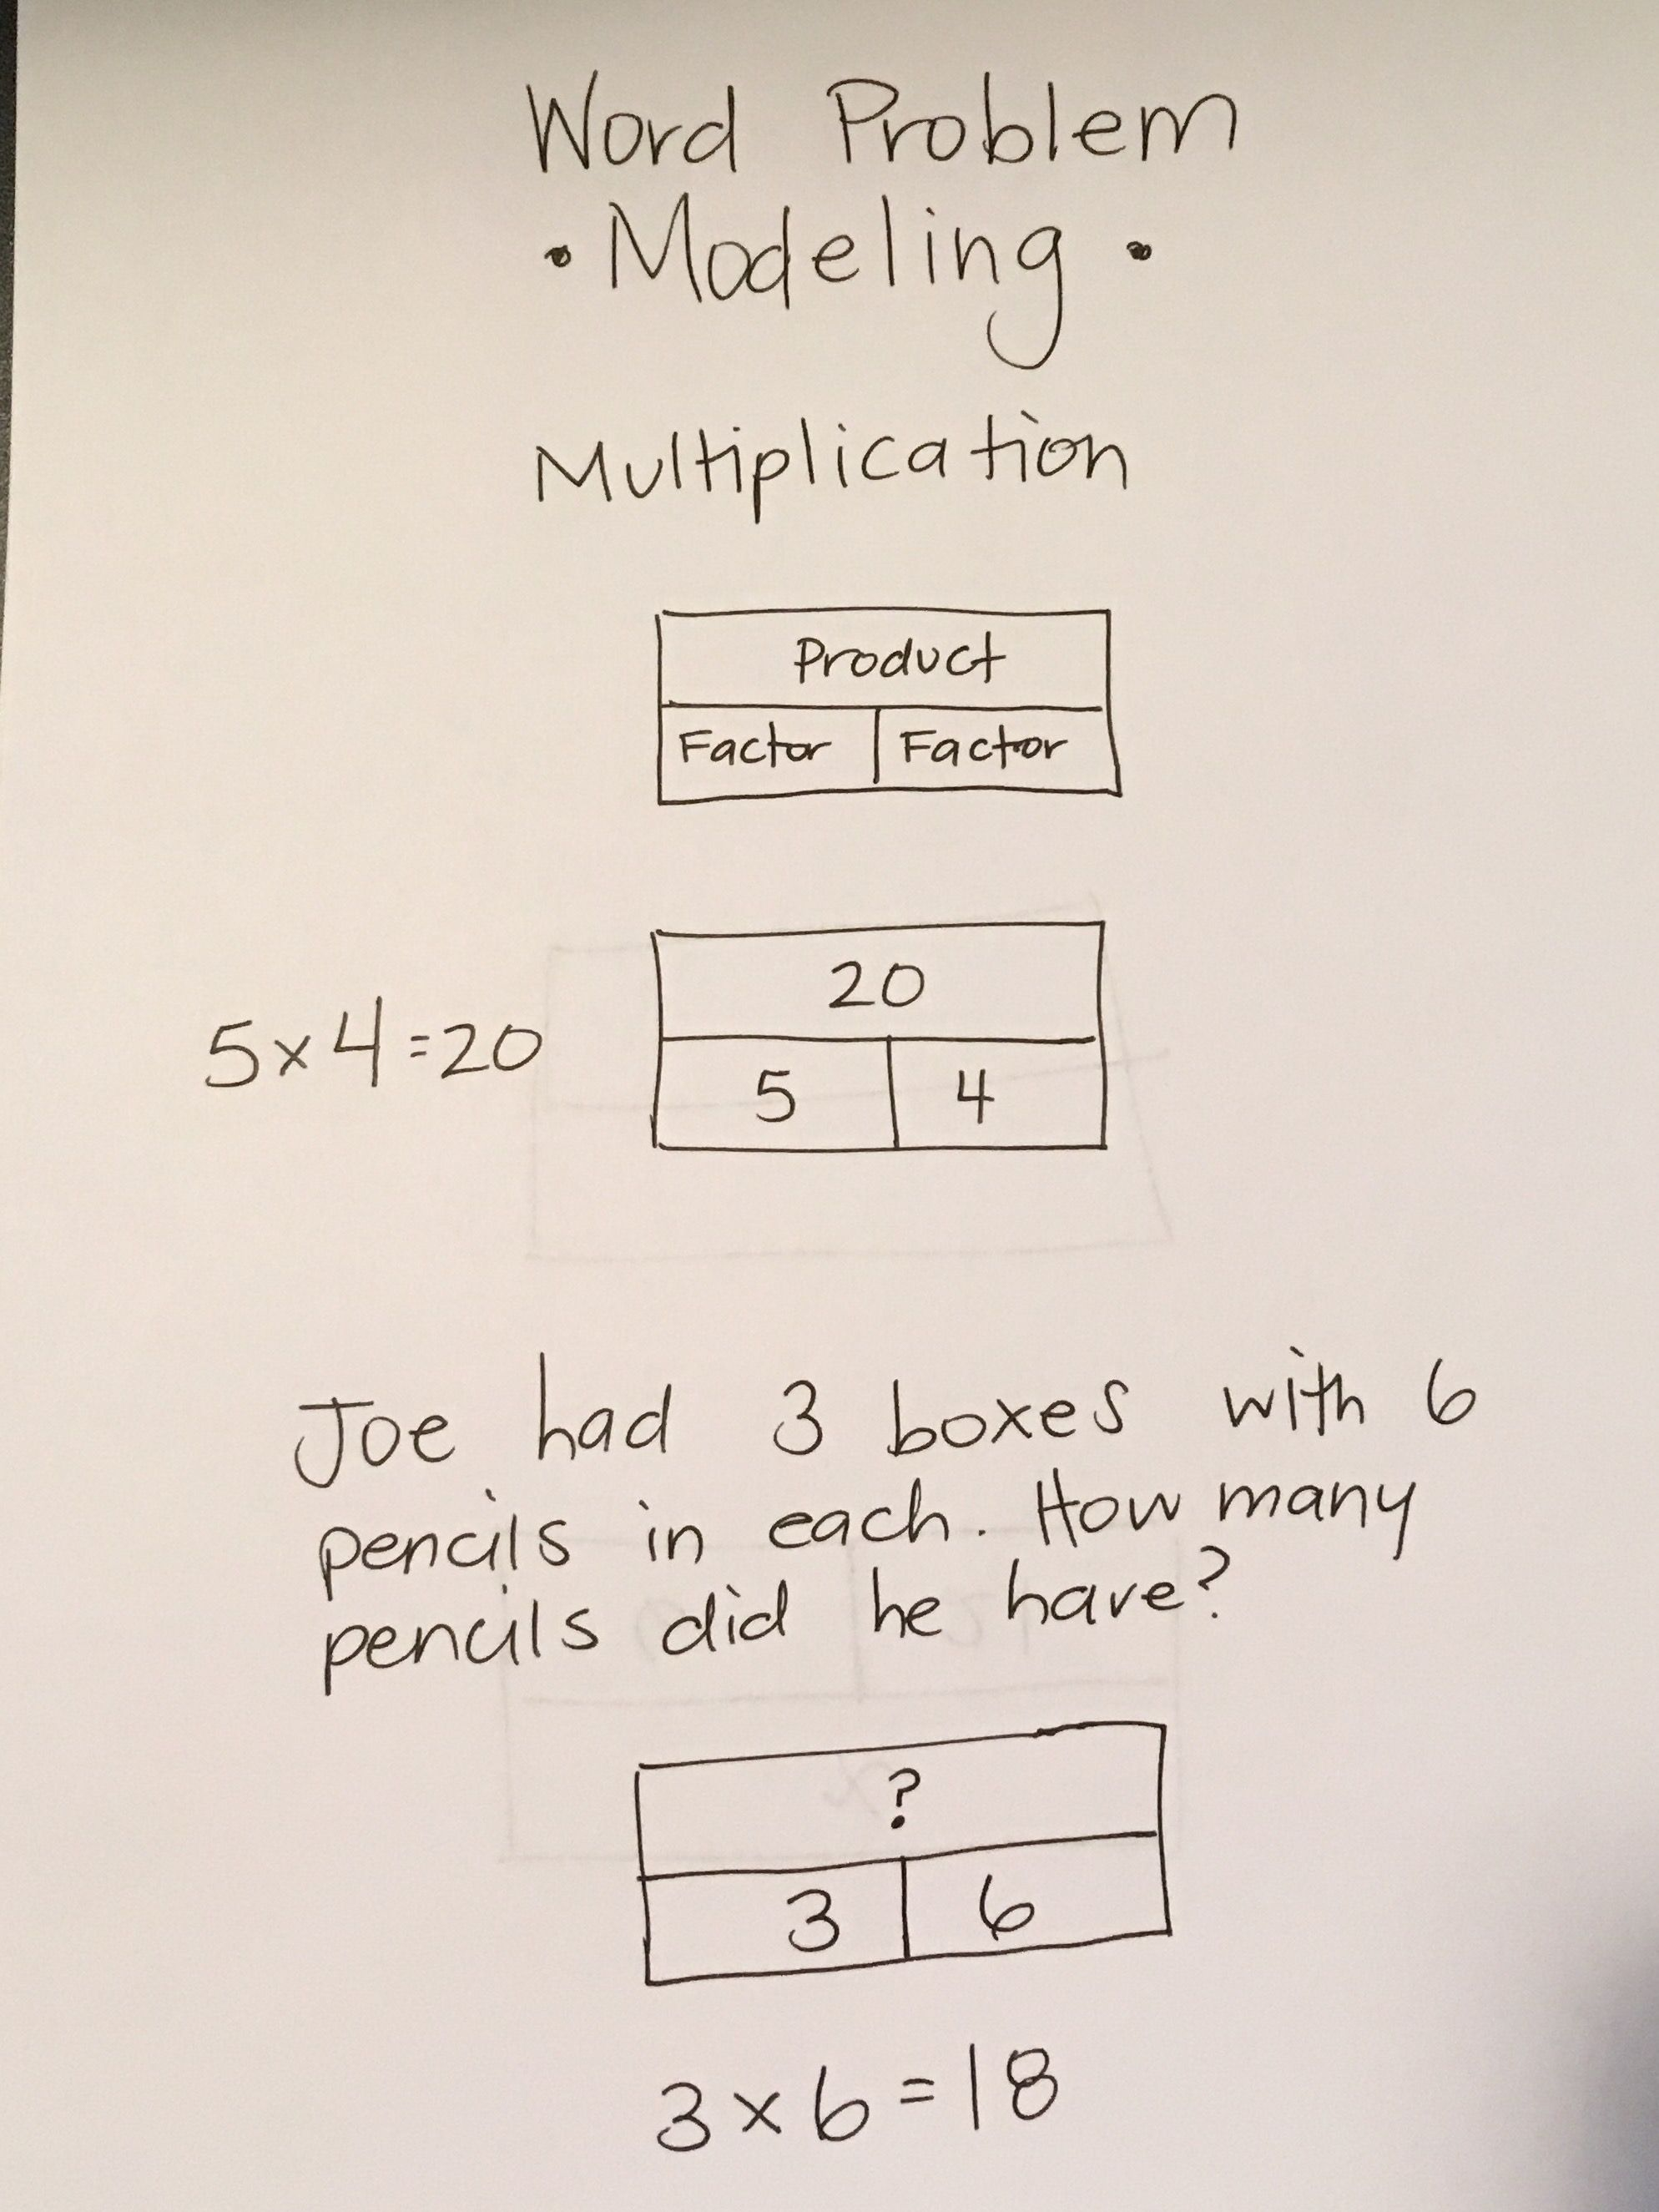 Part Part Whole Models For Multiplication